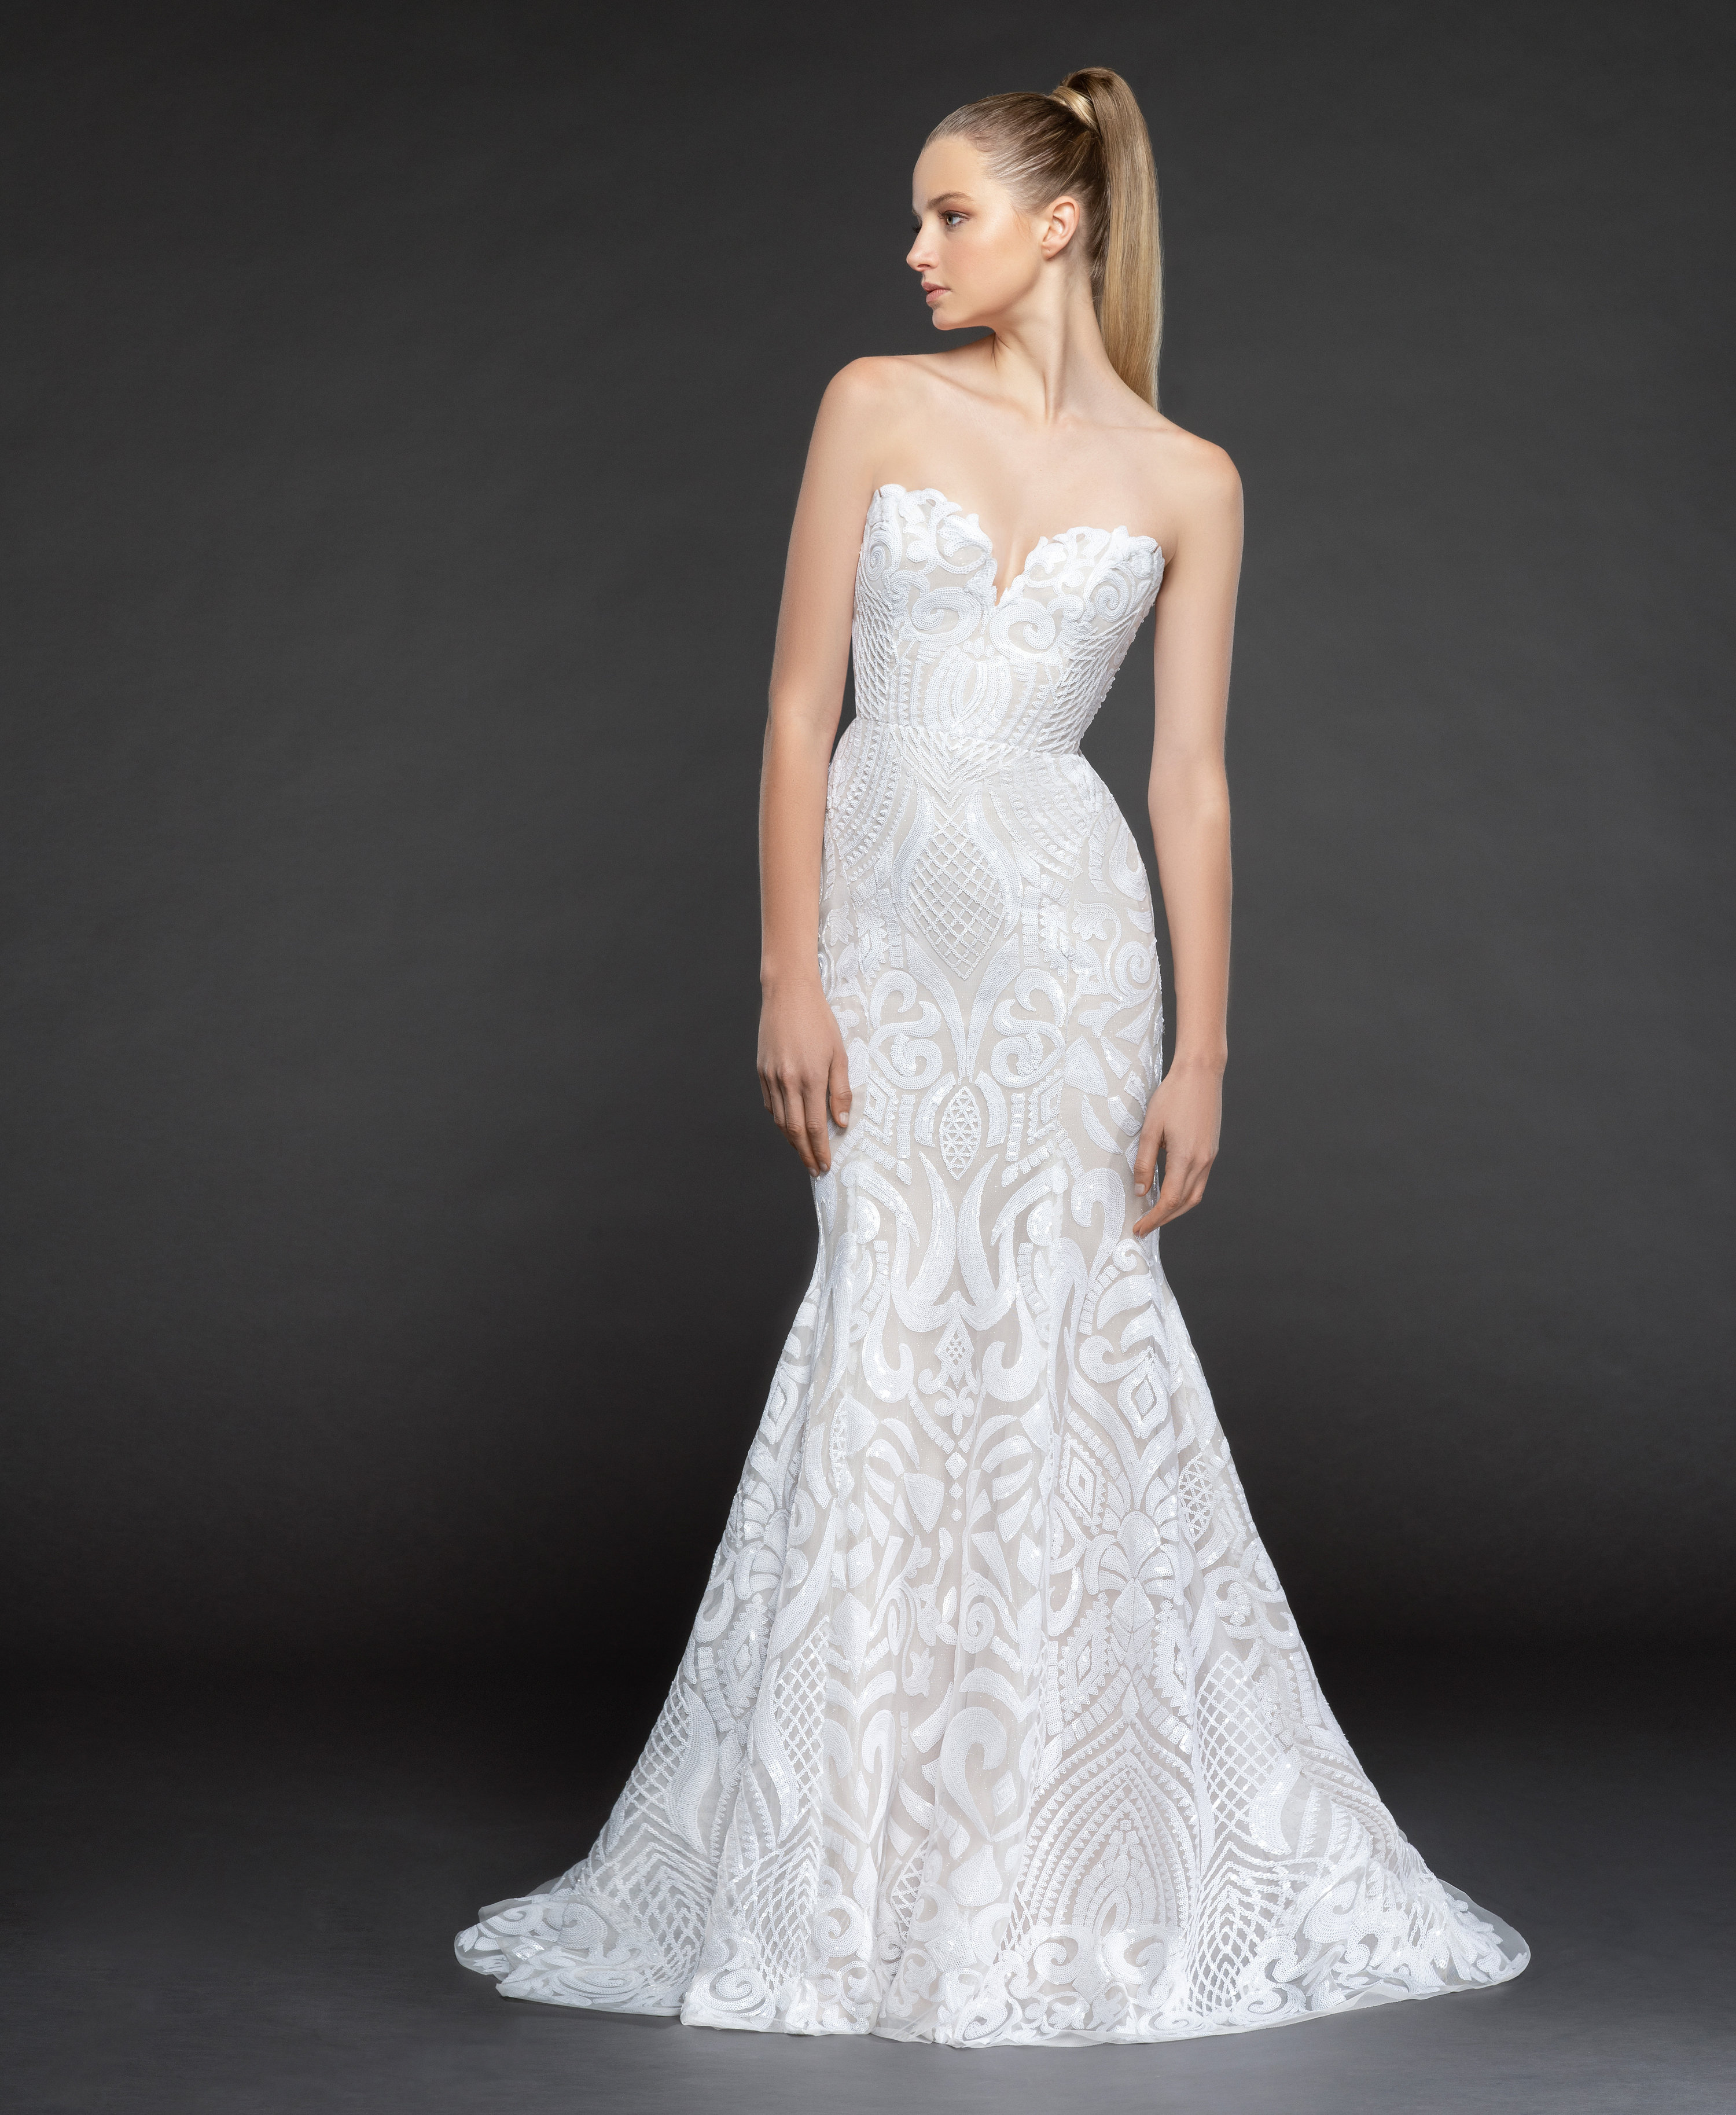 Wedding Gown Stores Nyc: Strapless Beaded Fit And Flare Wedding Dress With Scallop